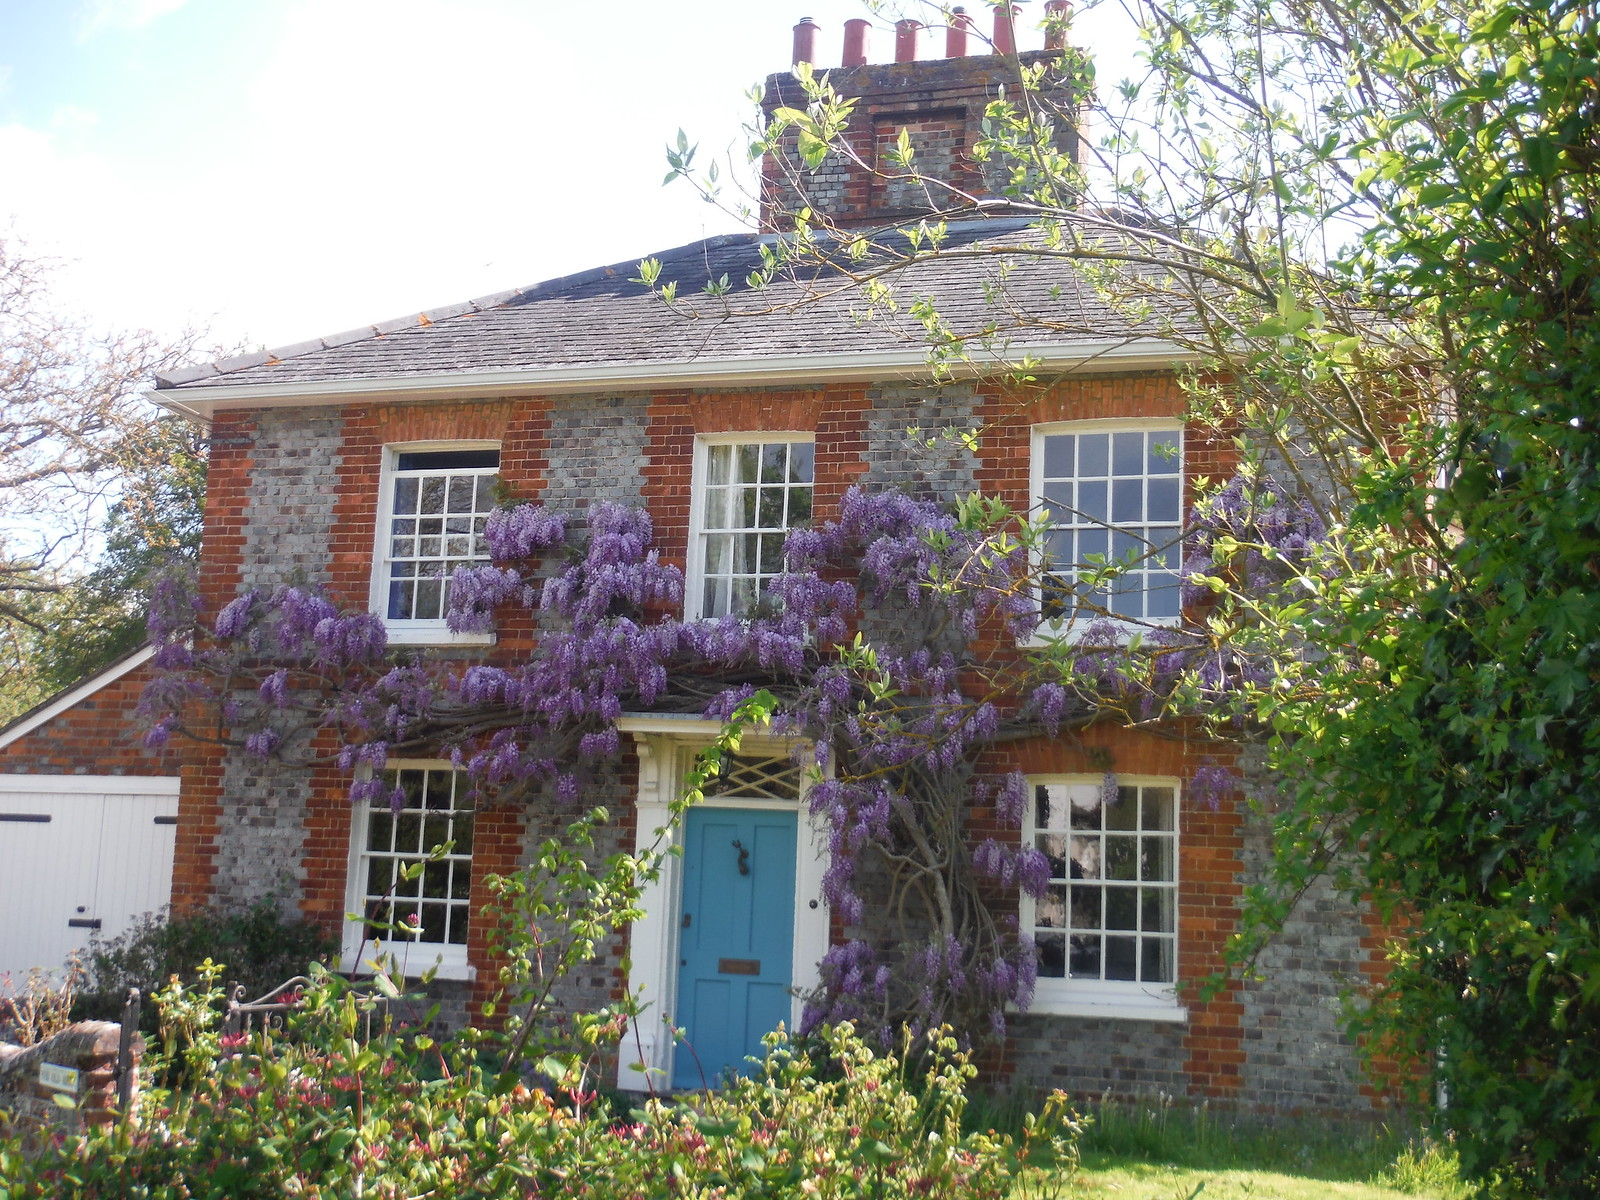 Wisteria-infested House, Moreton SWC Walk 190 - Thame Circular